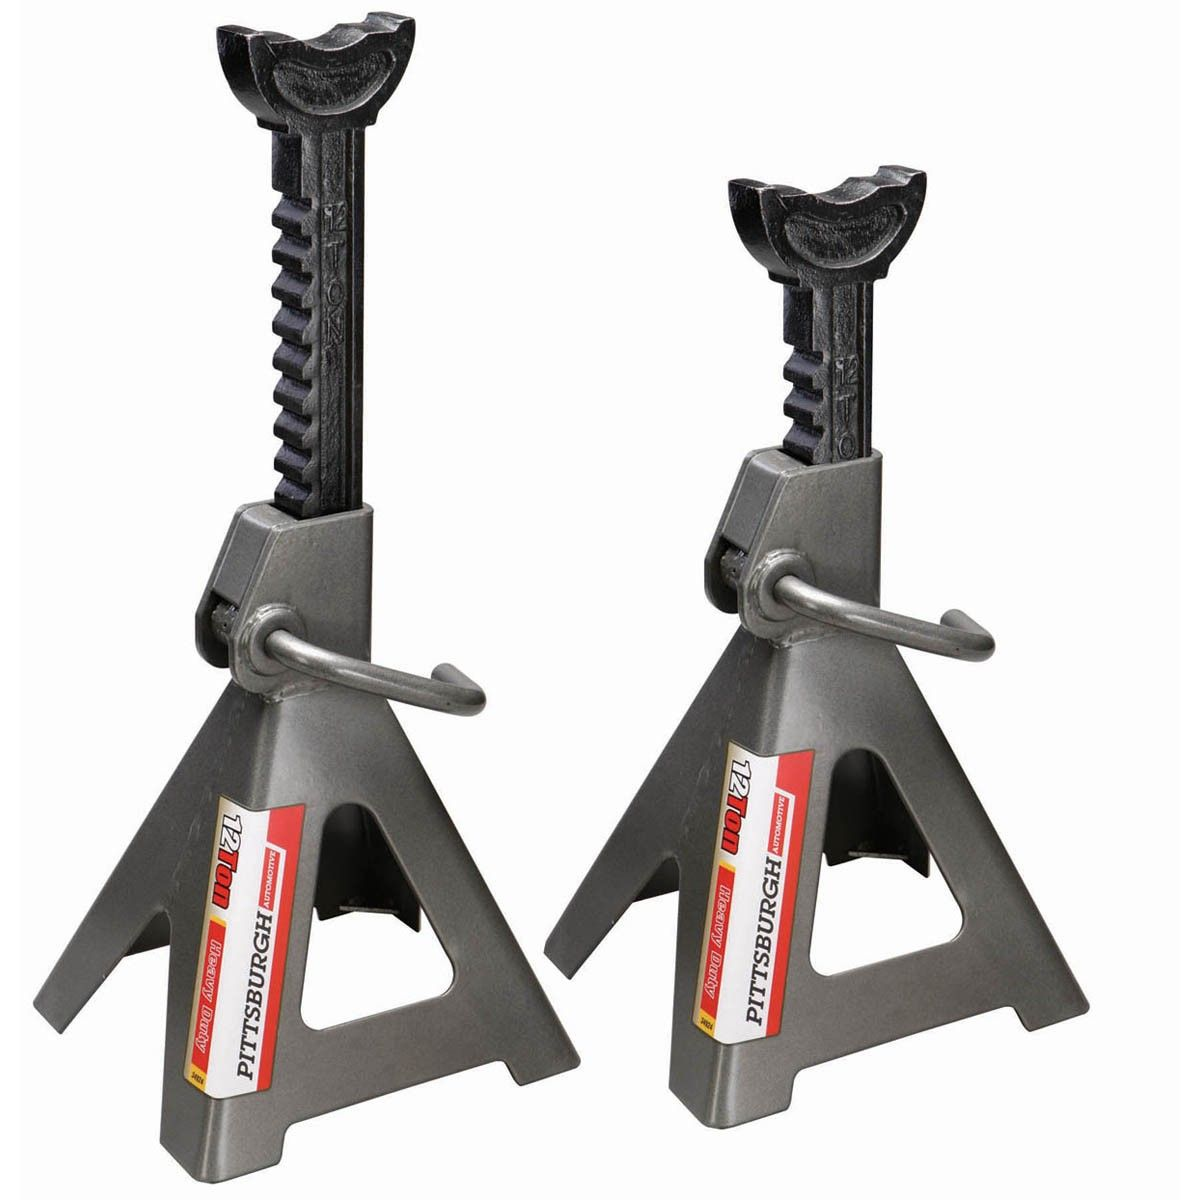 12 Ton Steel Jack Stands Jack Stands Auto Mechanics Tools Mechanic Tools